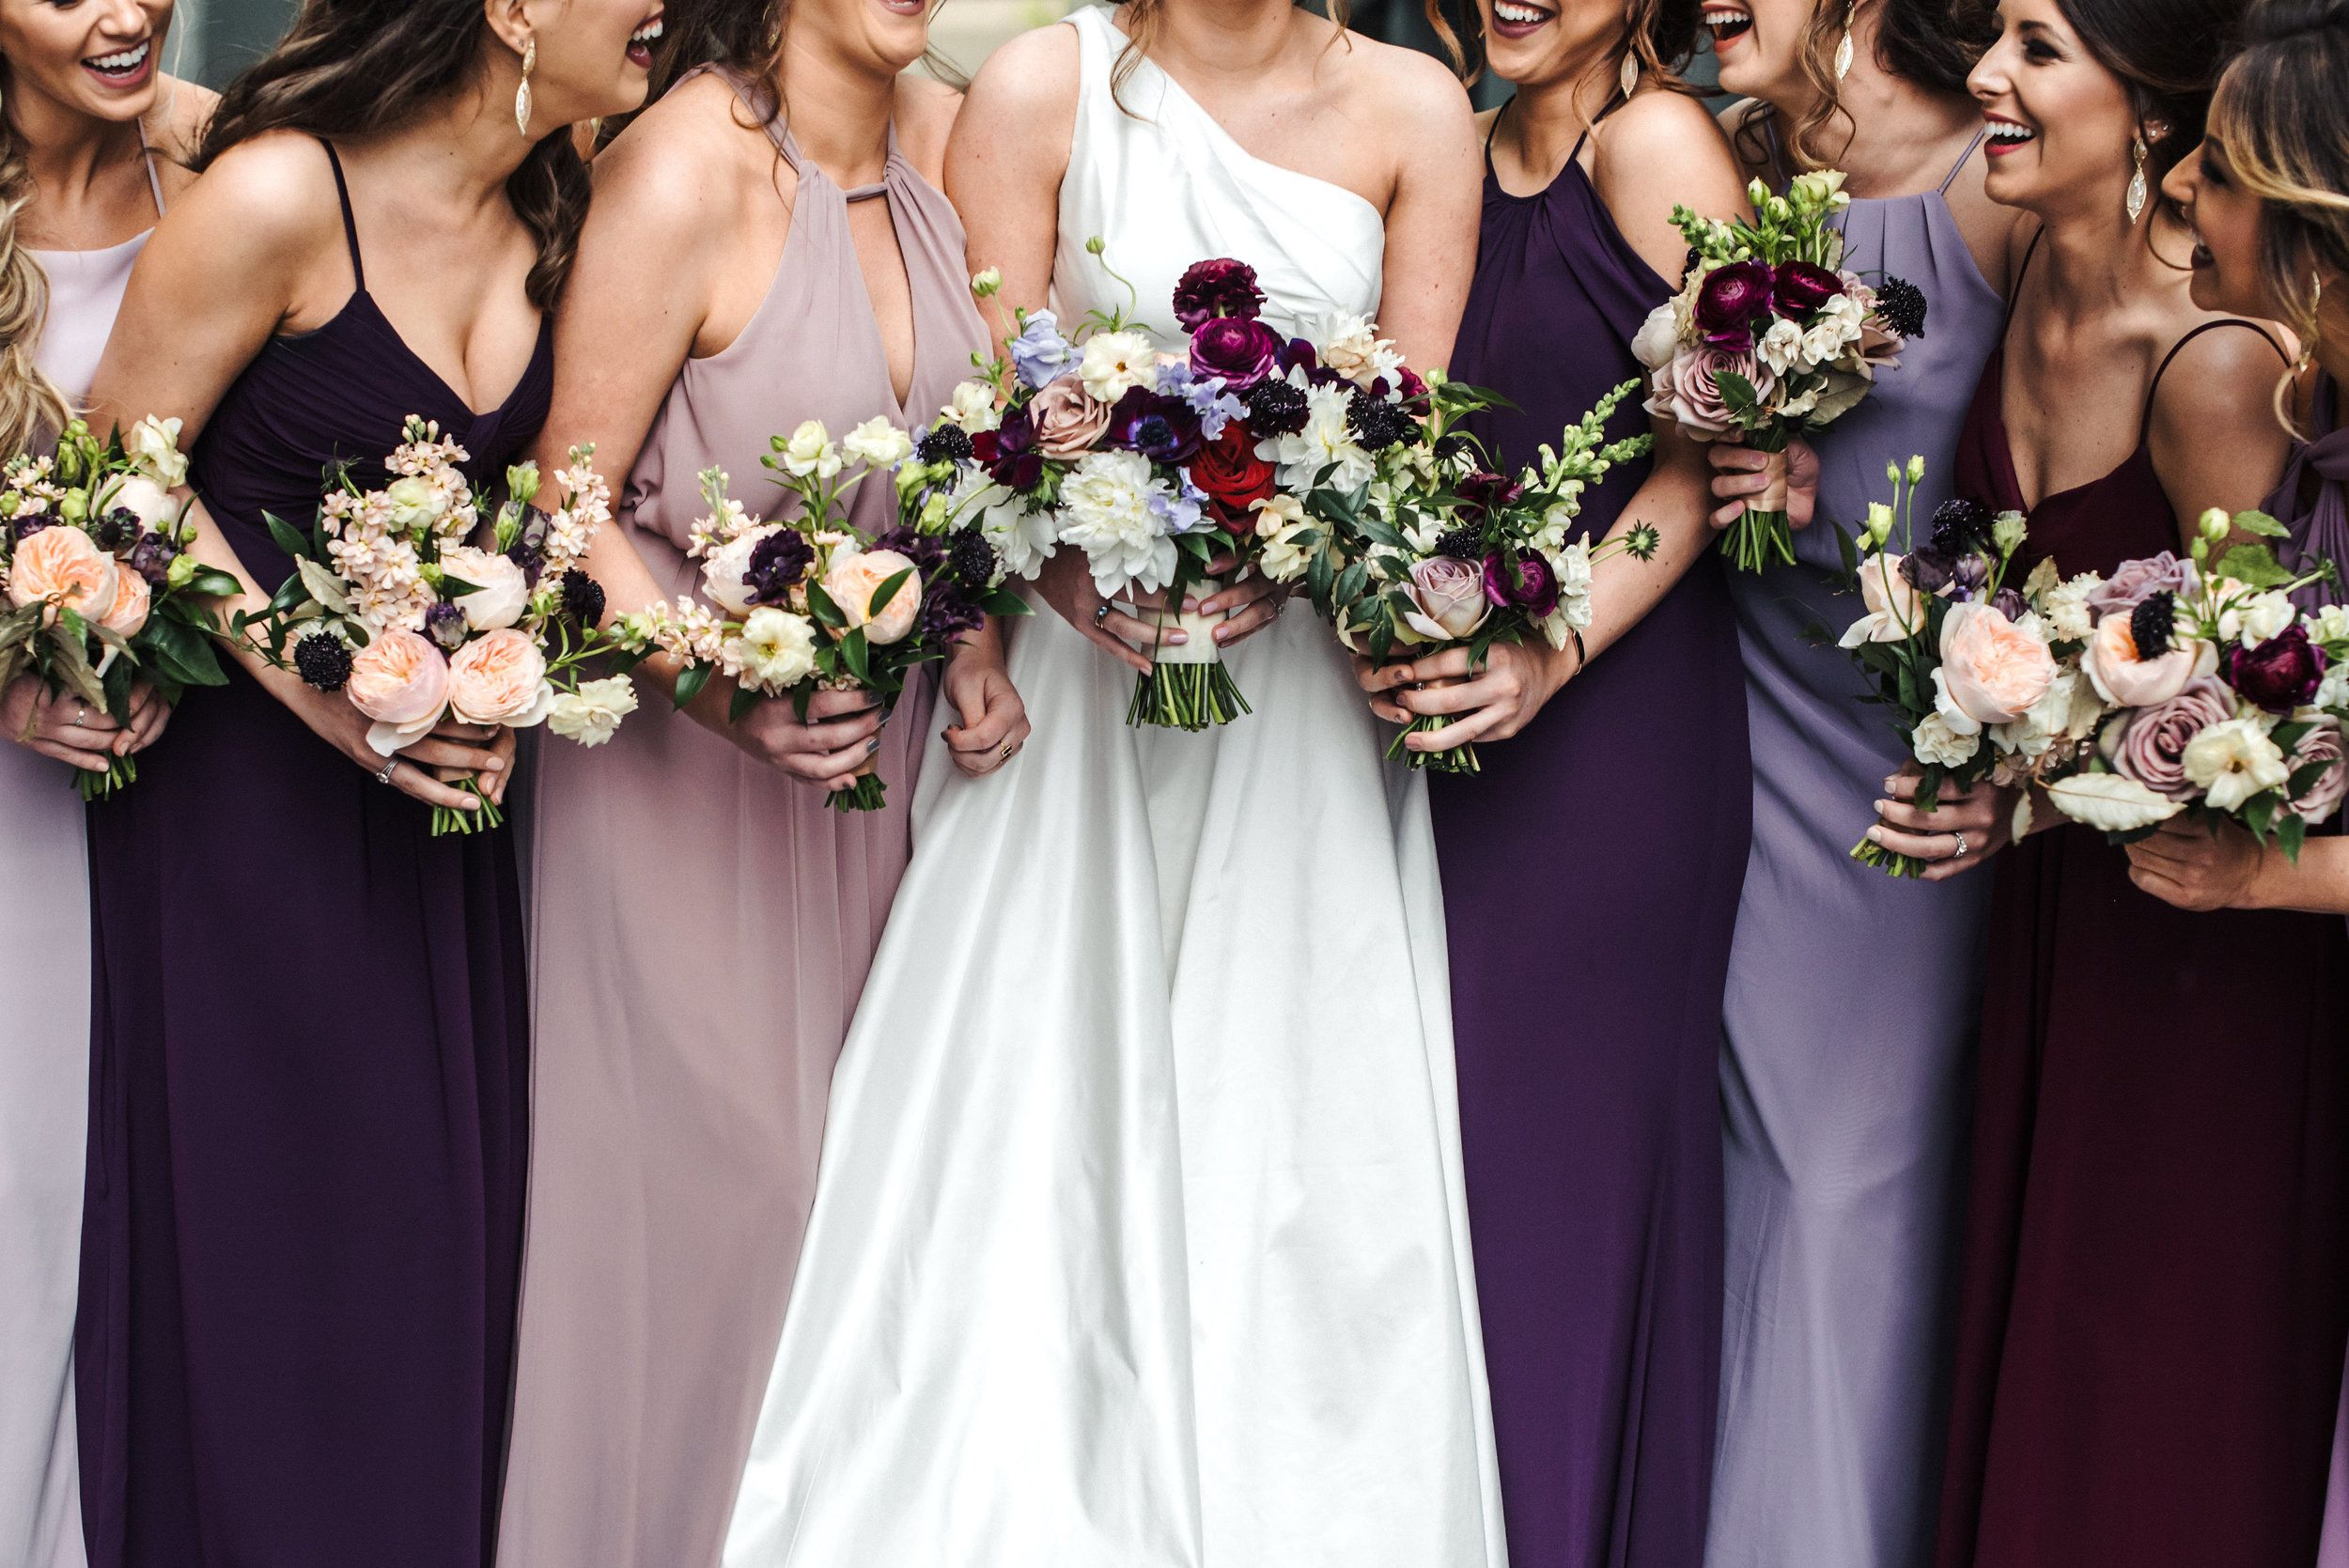 Pin On Weddings By The Graceful Host